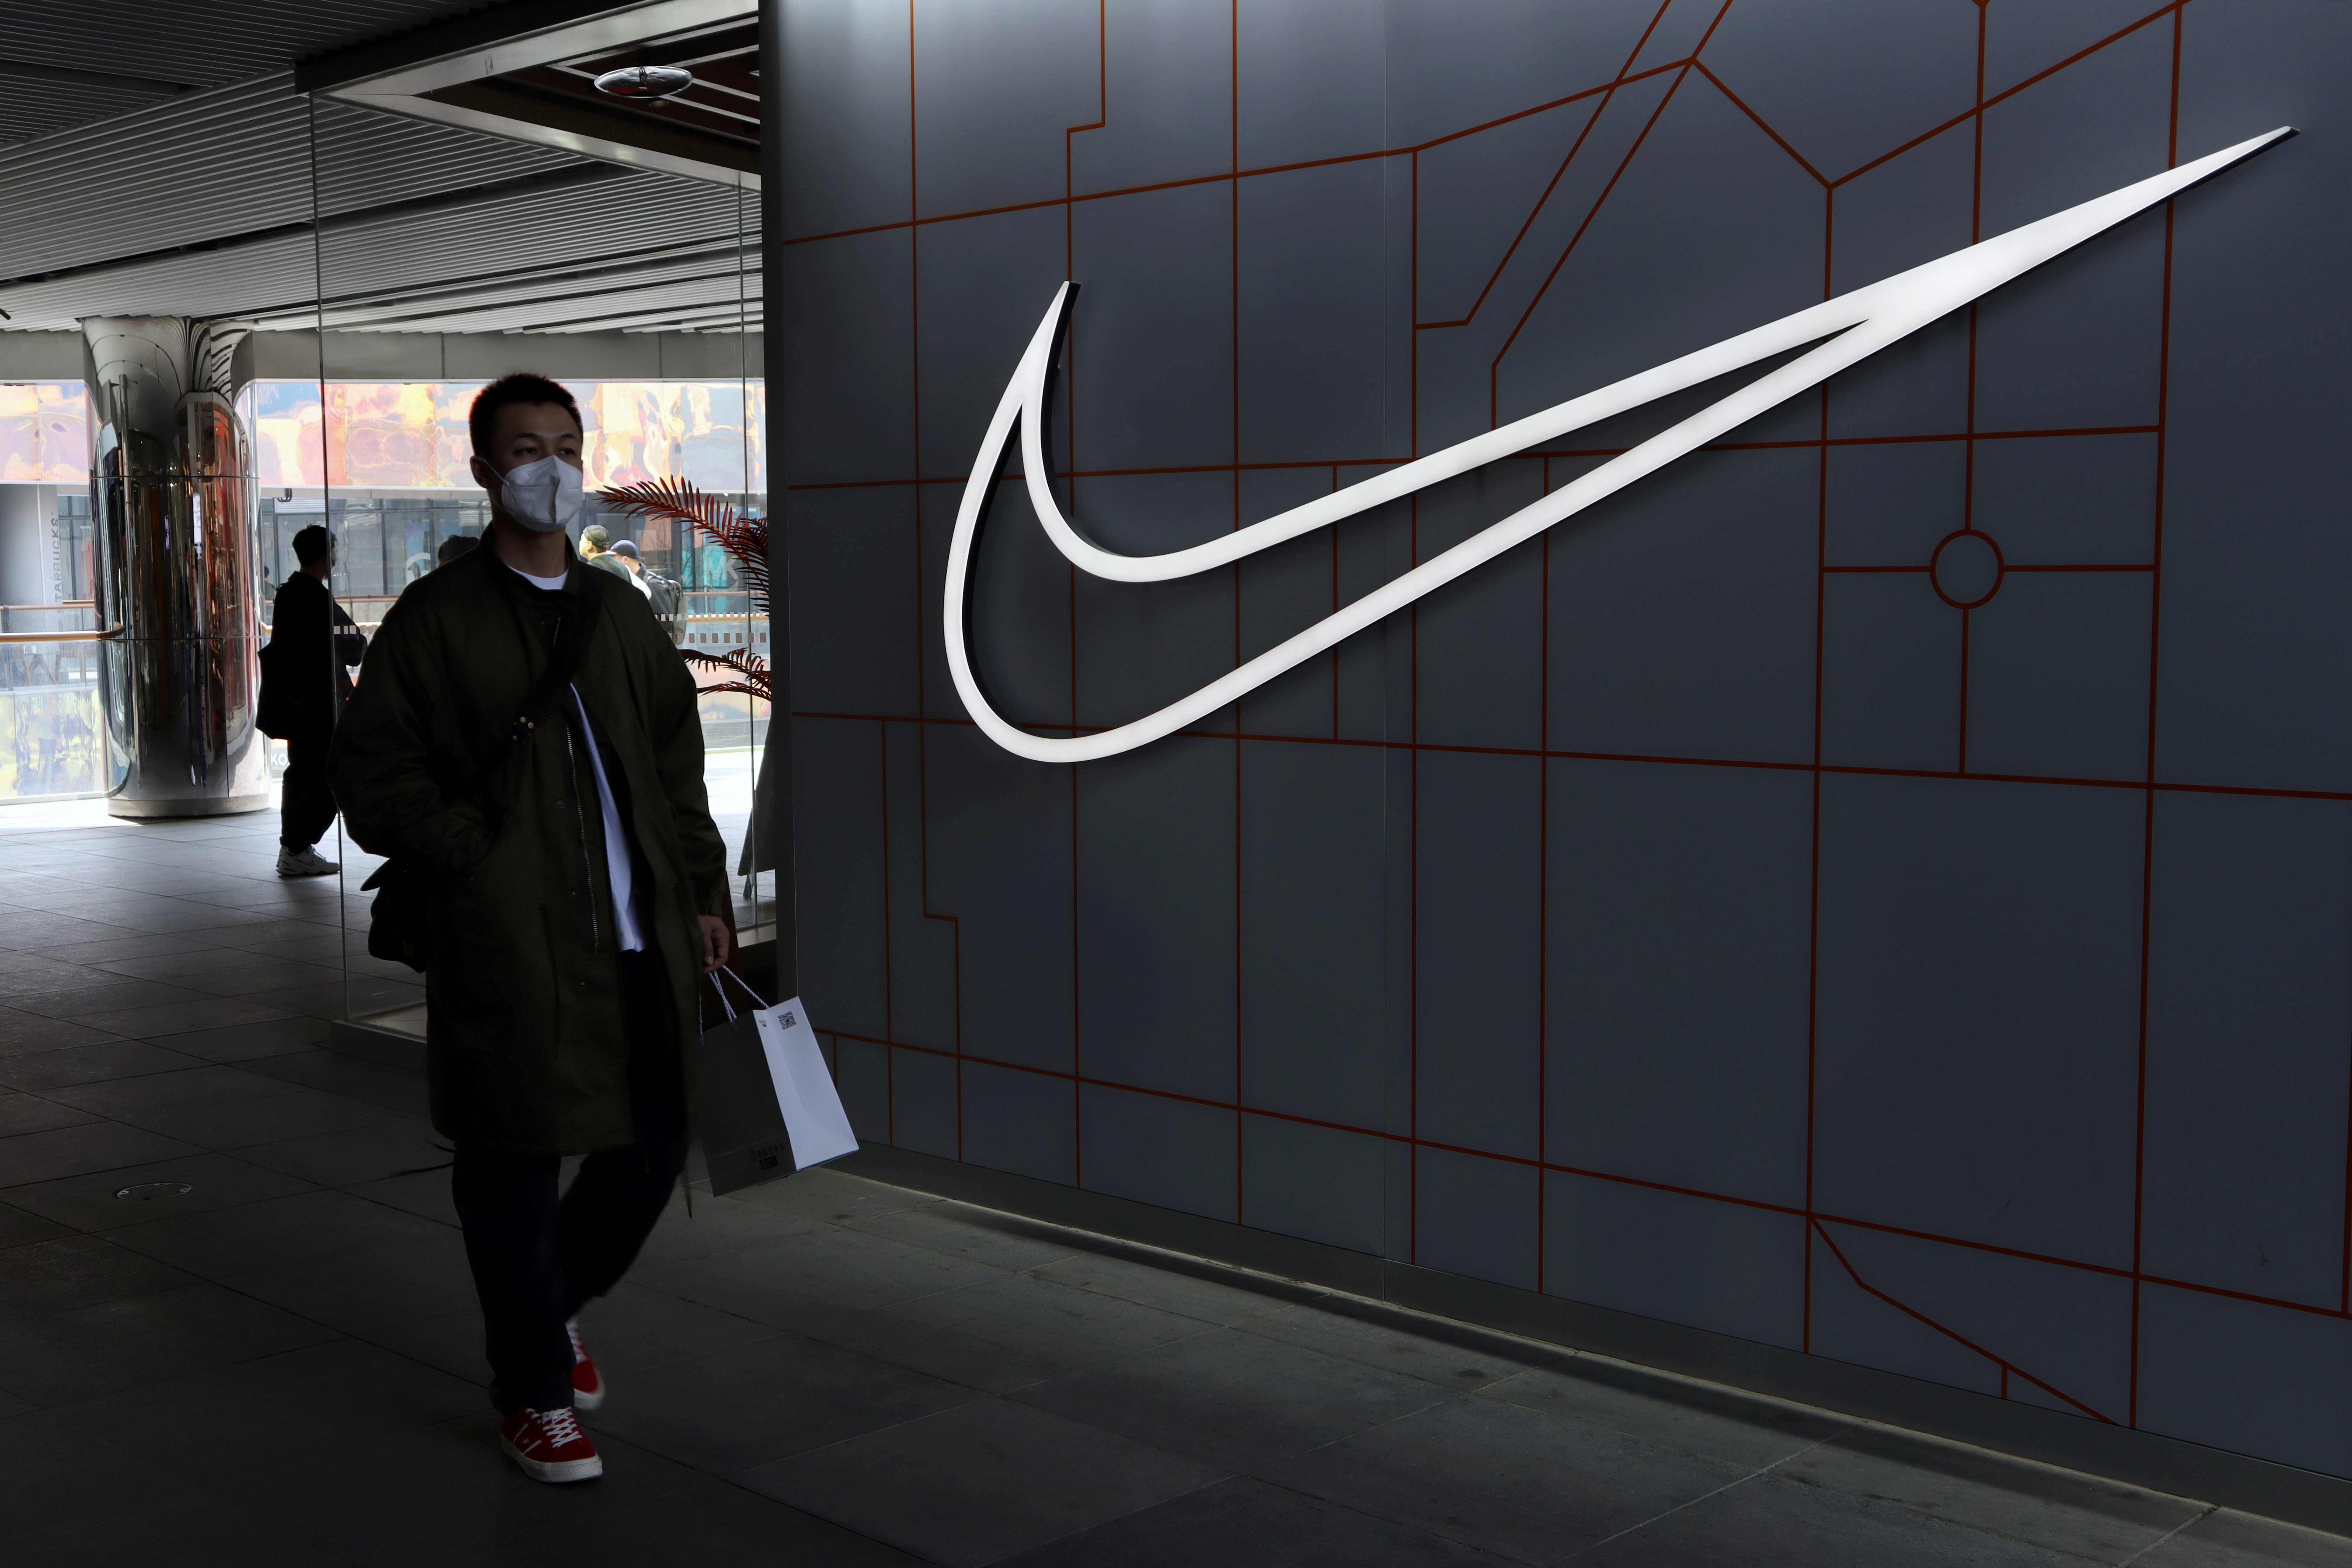 A man walks past a store of the sporting goods retailer Nike Inc at a shopping complex in Beijing, China March 25, 2021. REUTERS/Florence Lo